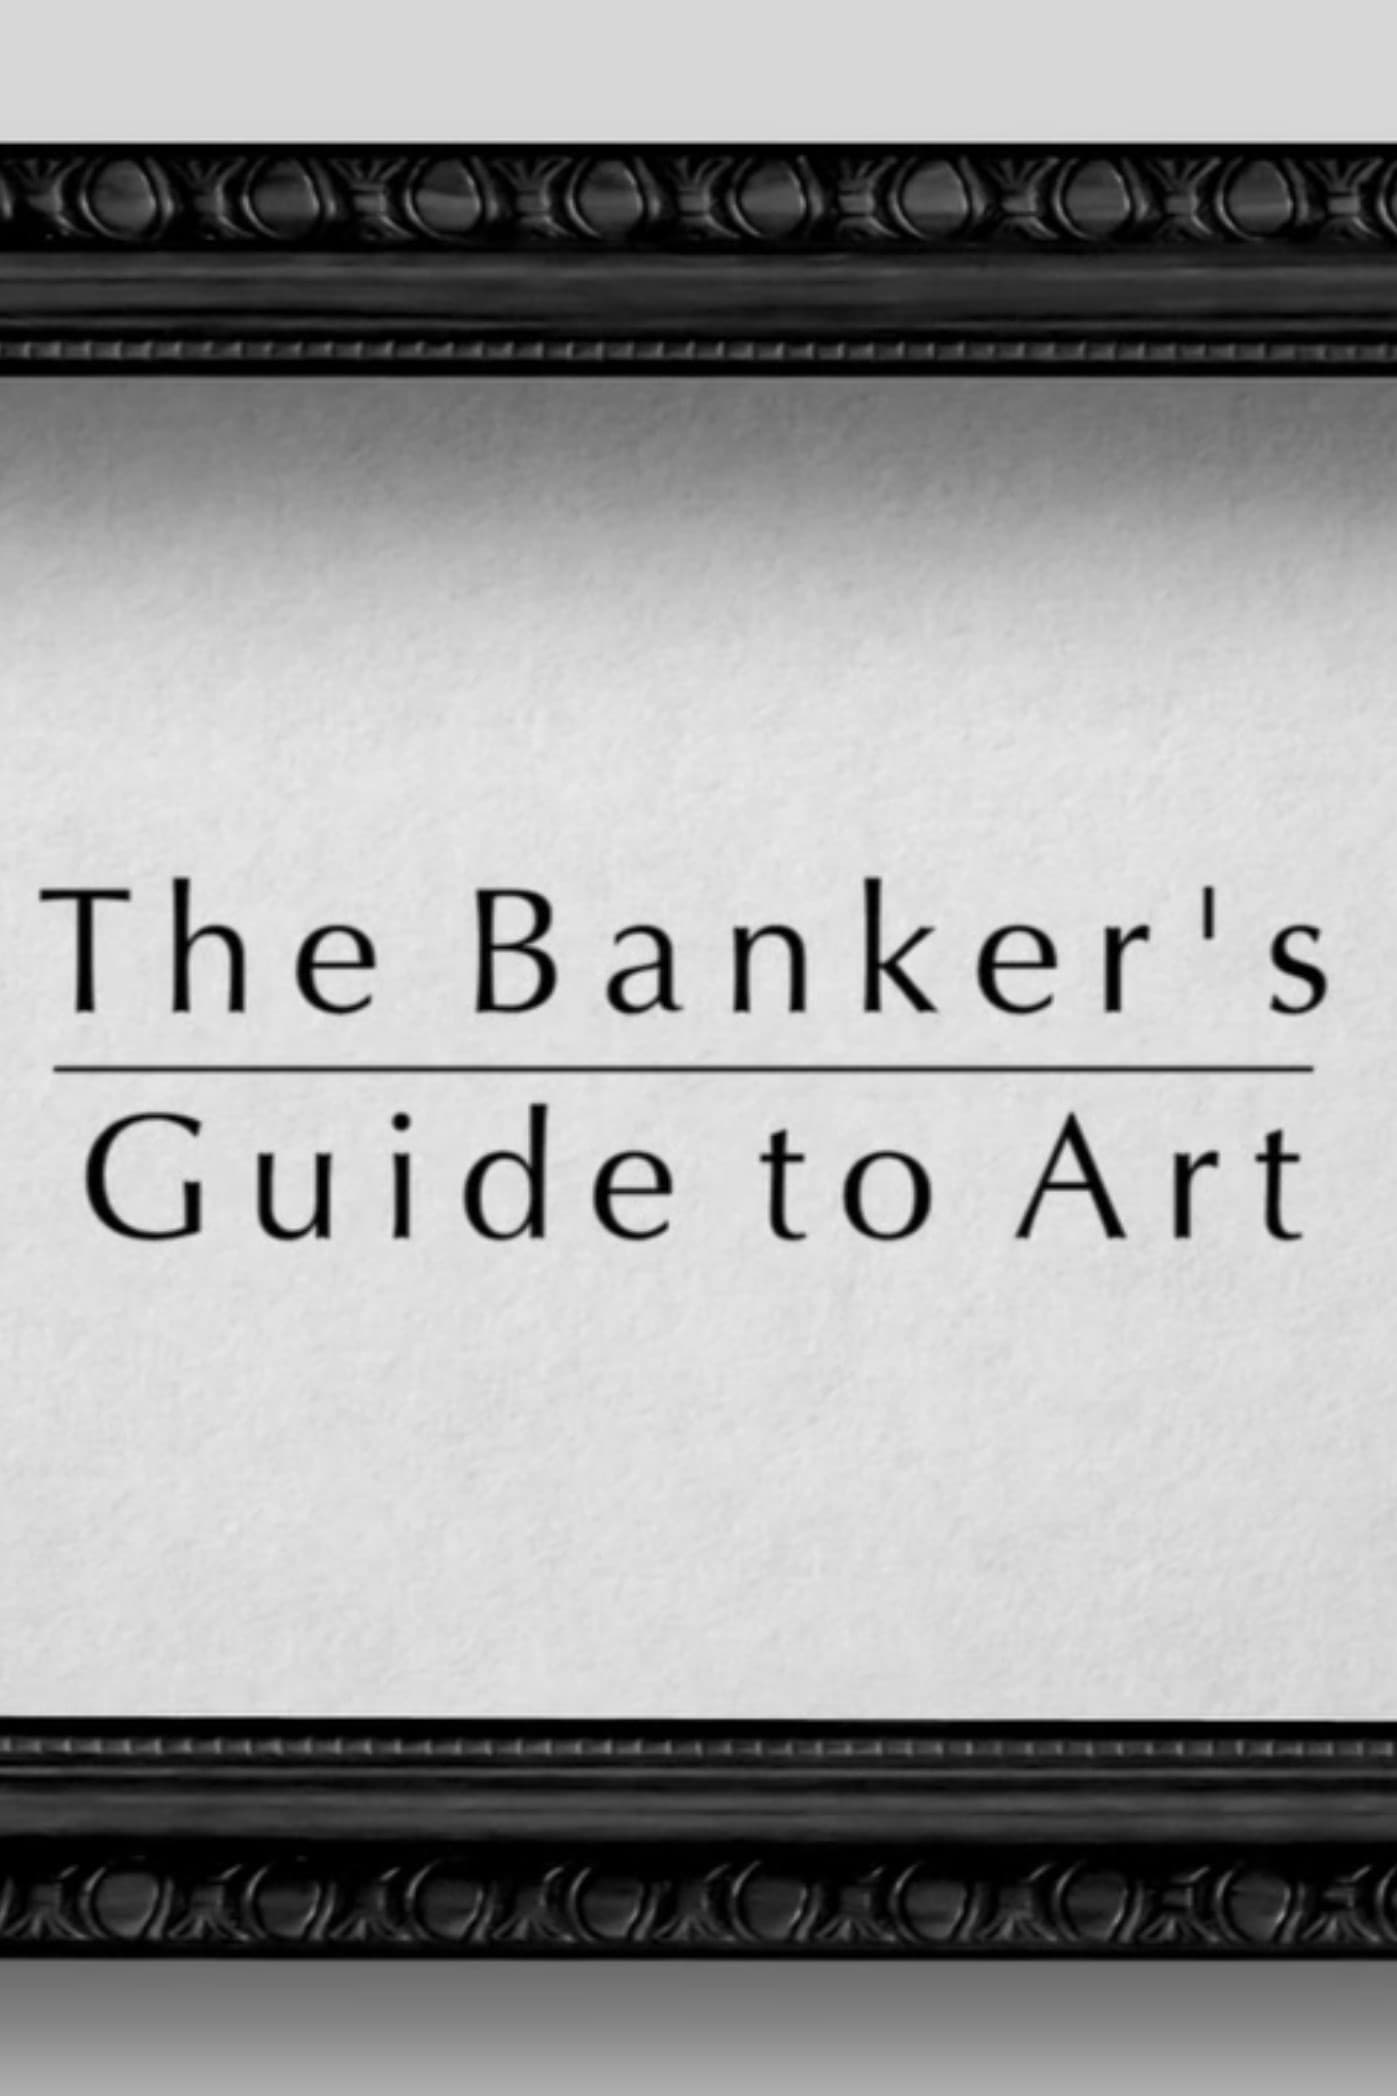 The Banker's Guide to Art (2016)